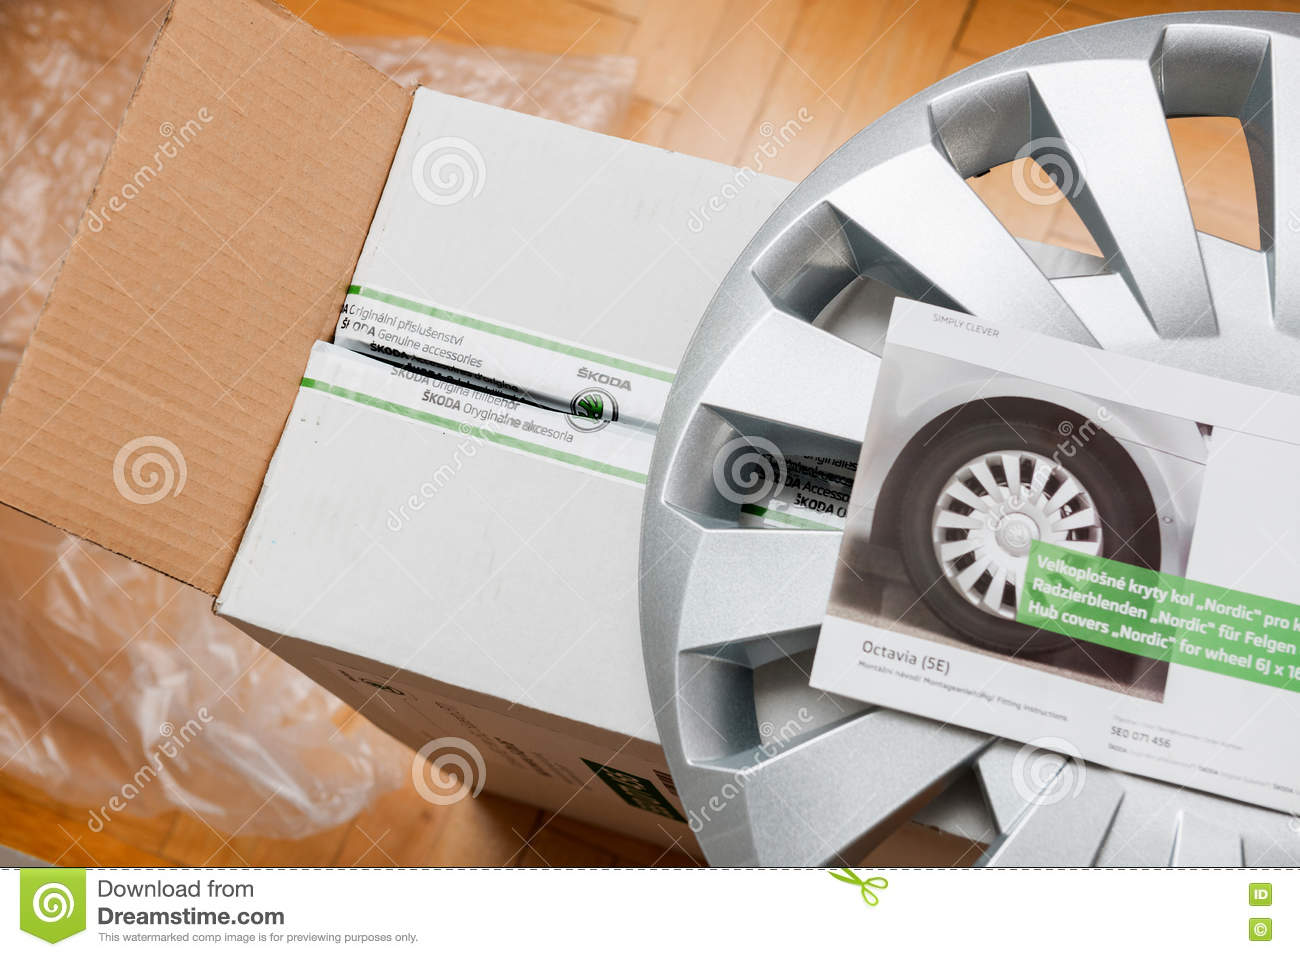 Garage Auto Paris Cardboard With New Car Hub Covers Editorial Stock Image Image Of